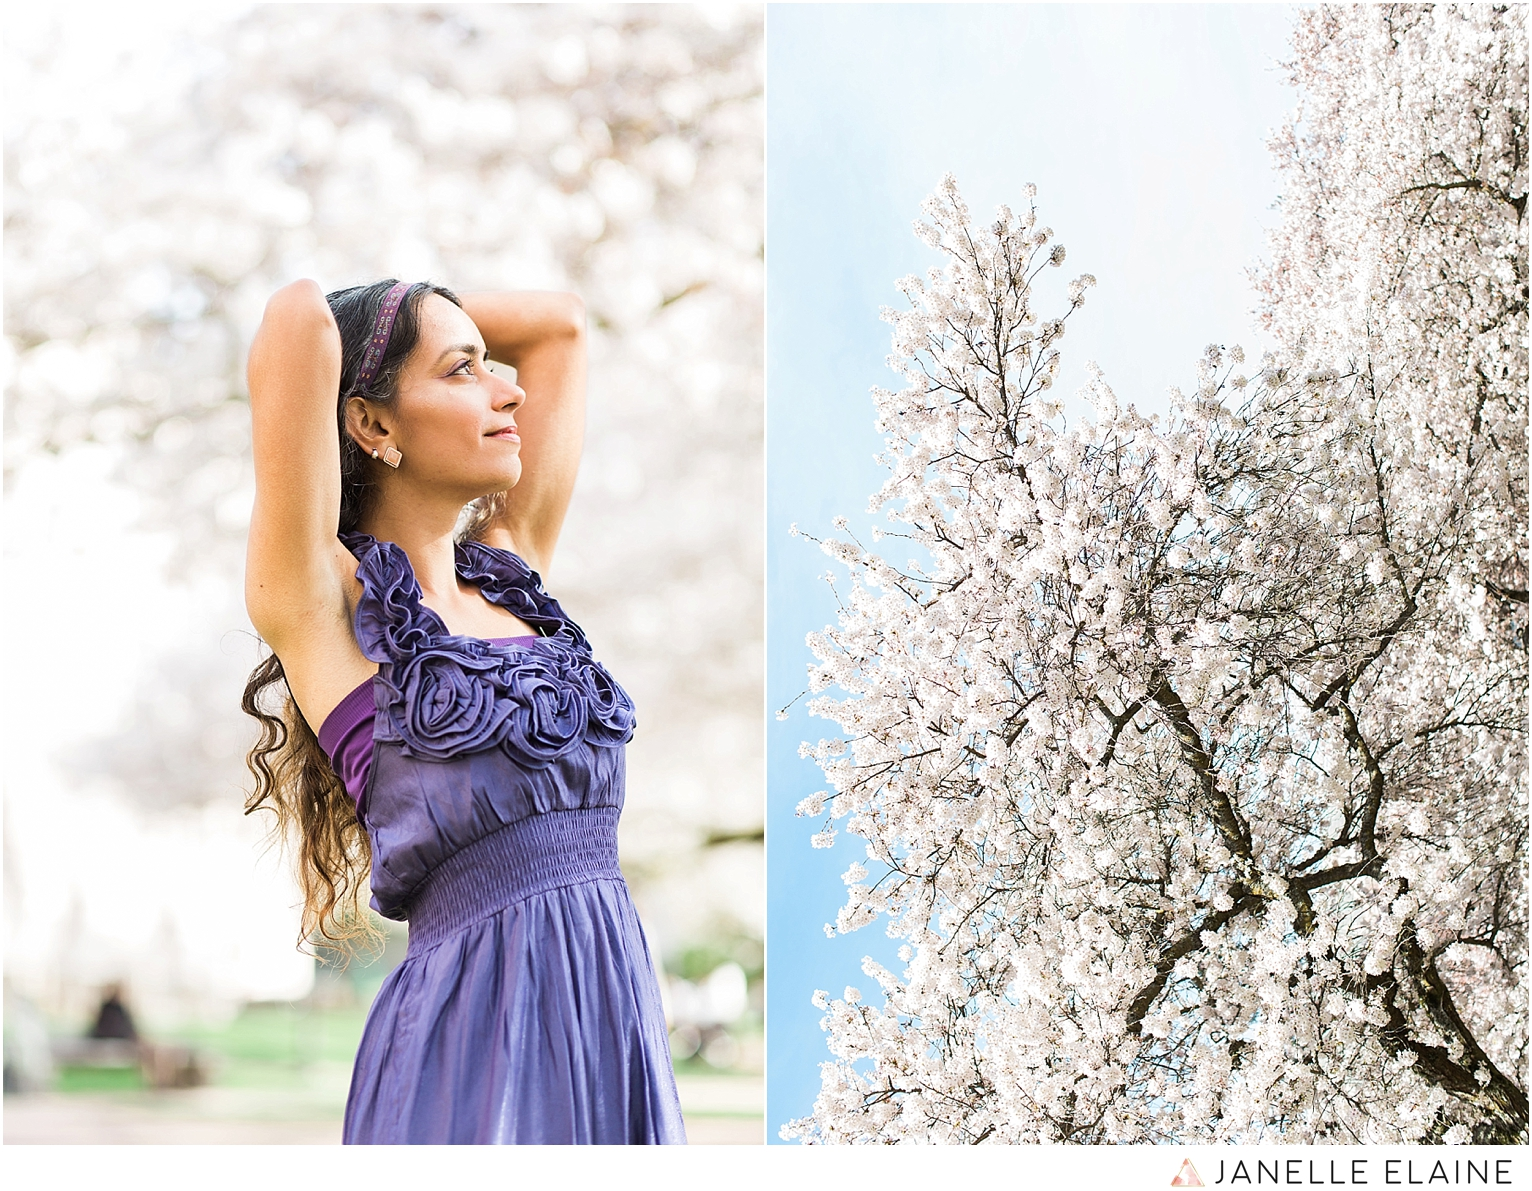 Sufience-Harkirat-spring portrait session-cherry blossoms-uw-seattle photographer janelle elaine-42.jpg